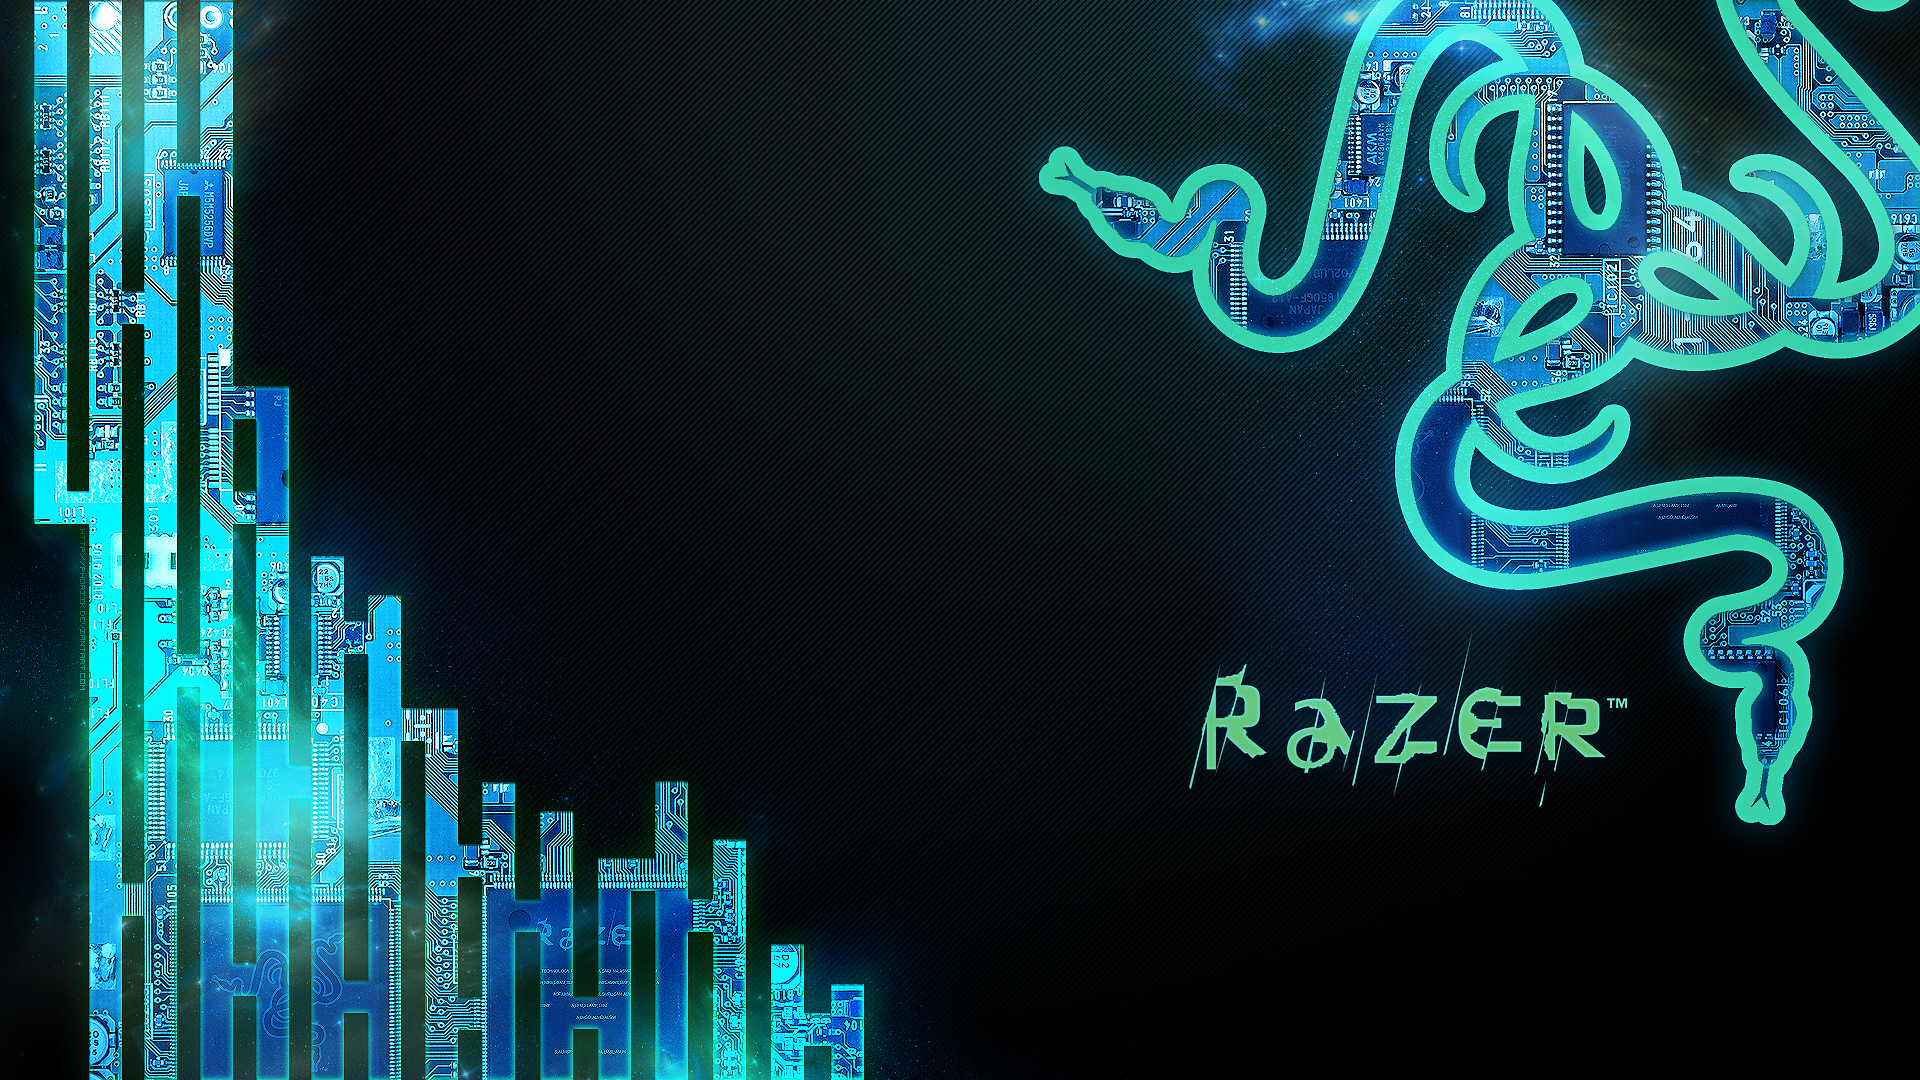 Name Brand Wallpapers Download HD Wallpapers 1920x1080